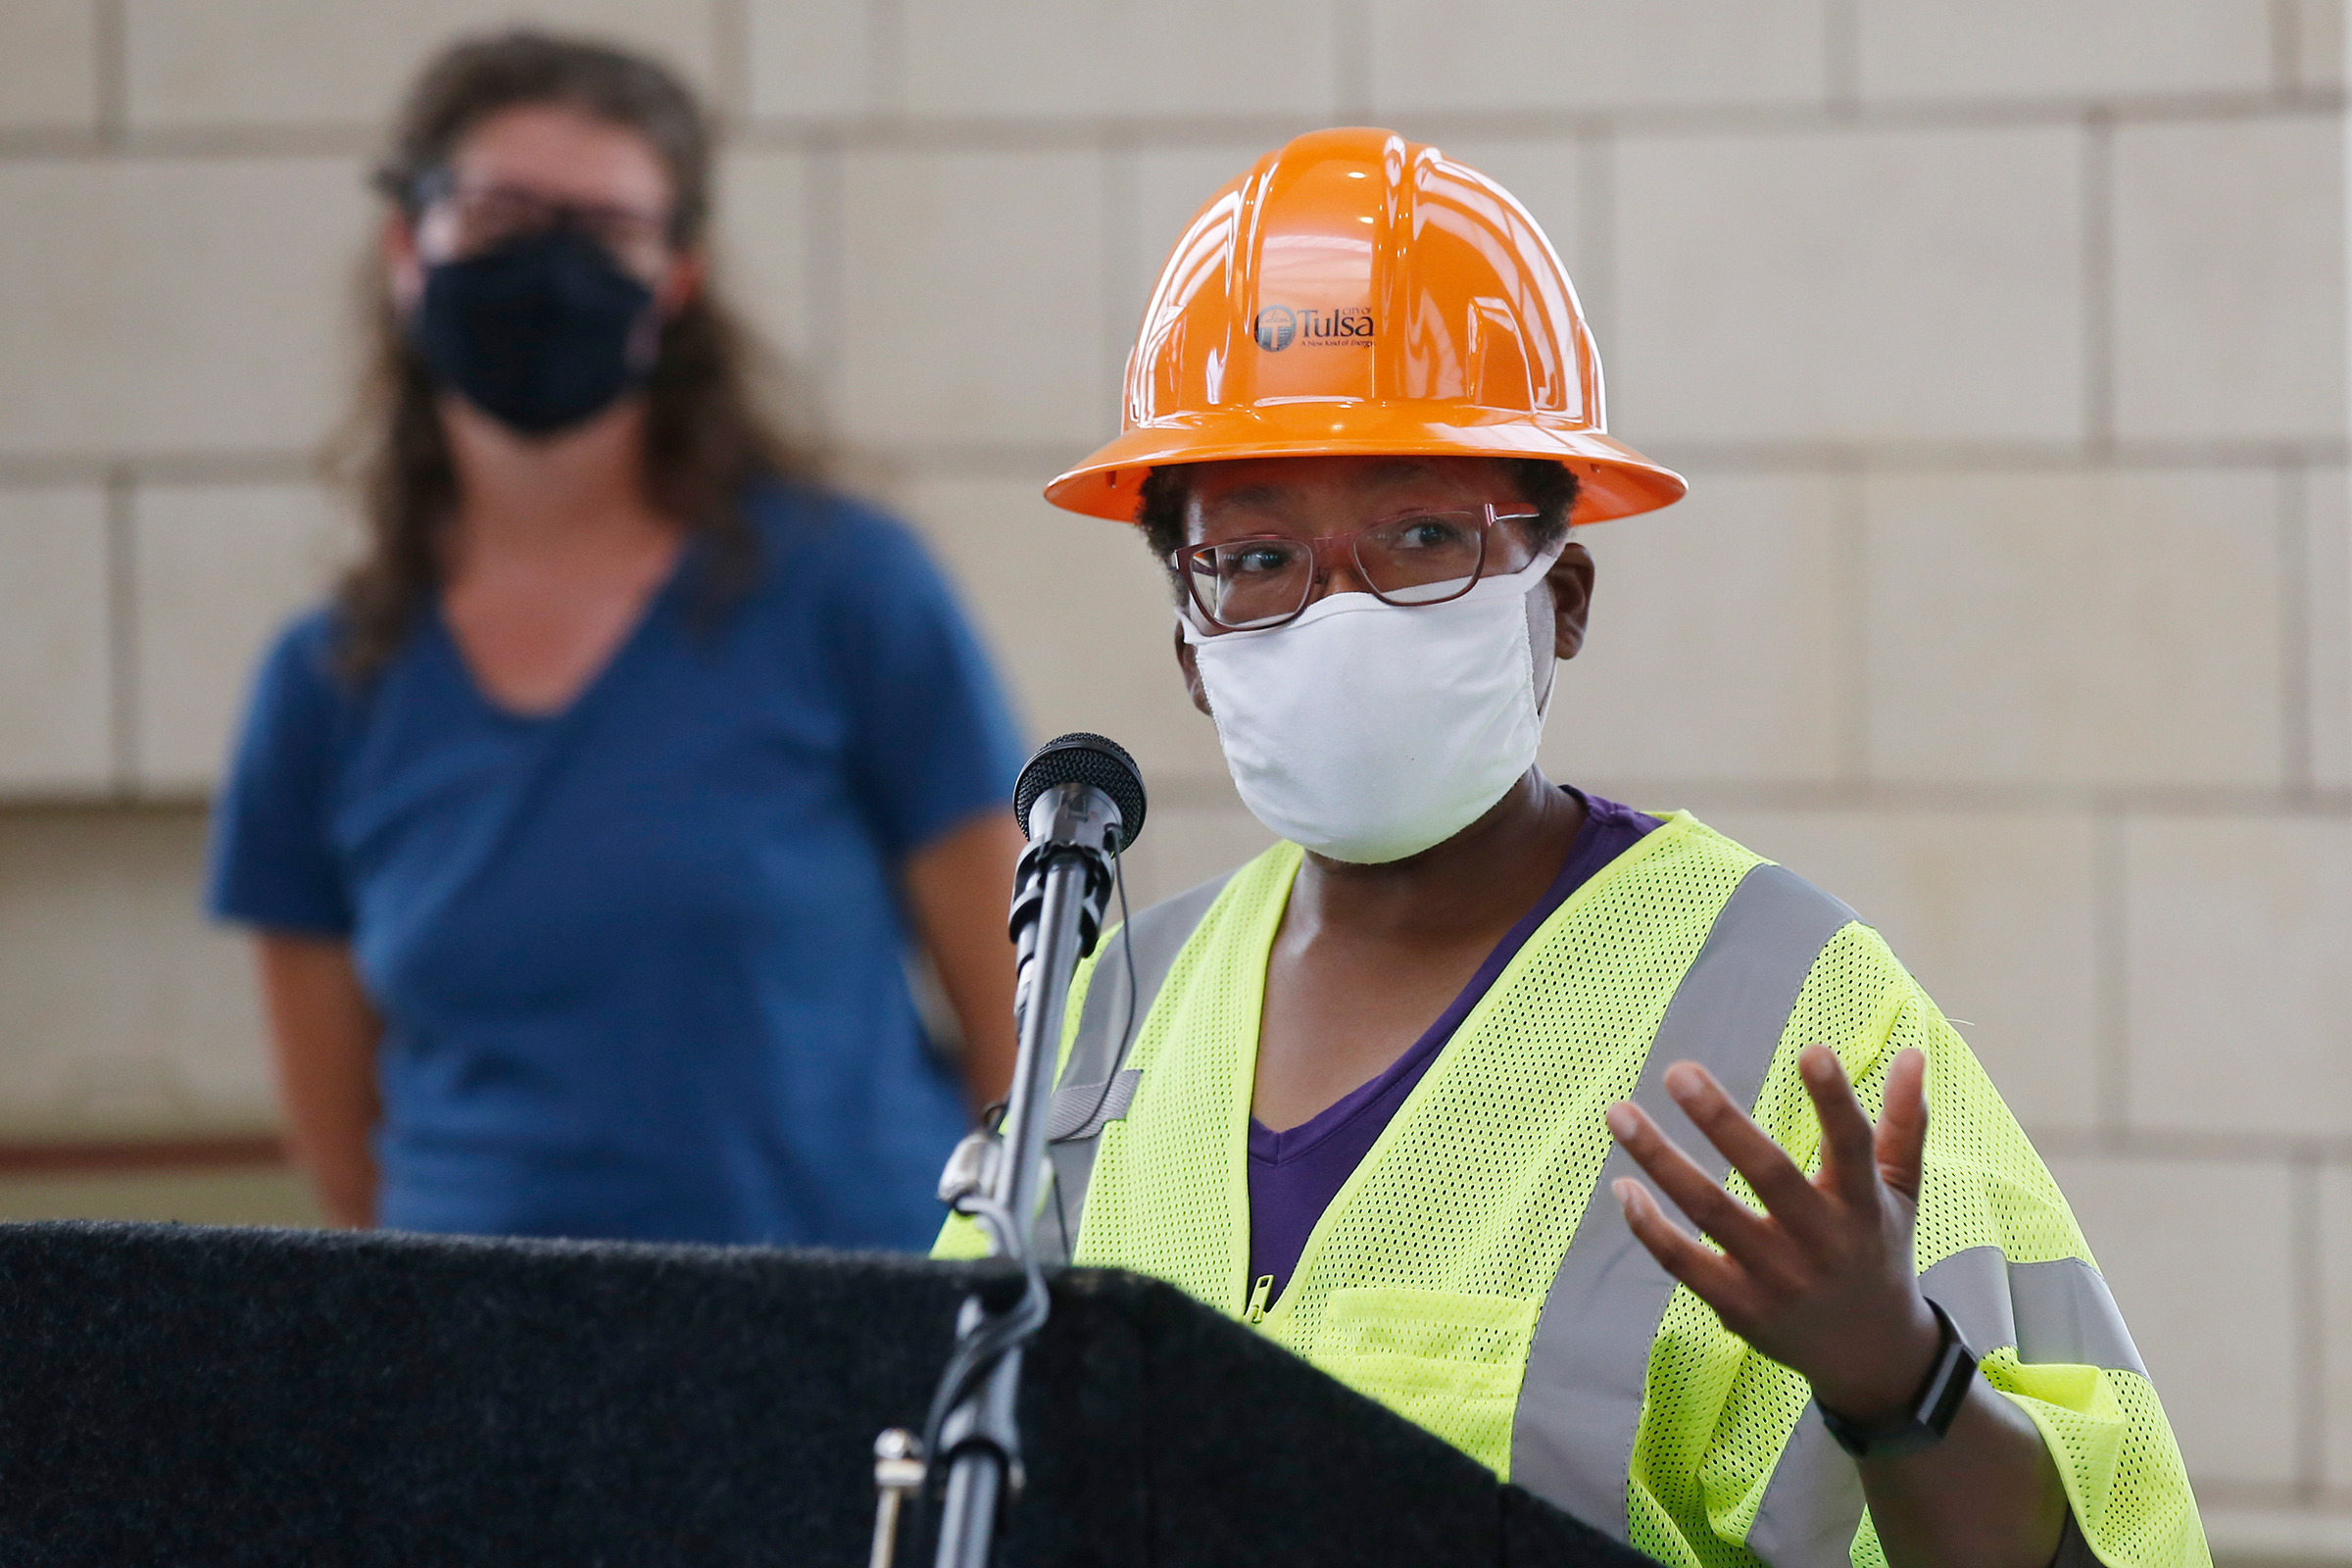 Stubblefield speaks during a news conference as work continues on an excavation of a potential unmarked mass grave from the 1921 Tulsa Race Massacre at Oaklawn Cemetery on July 14, 2020.